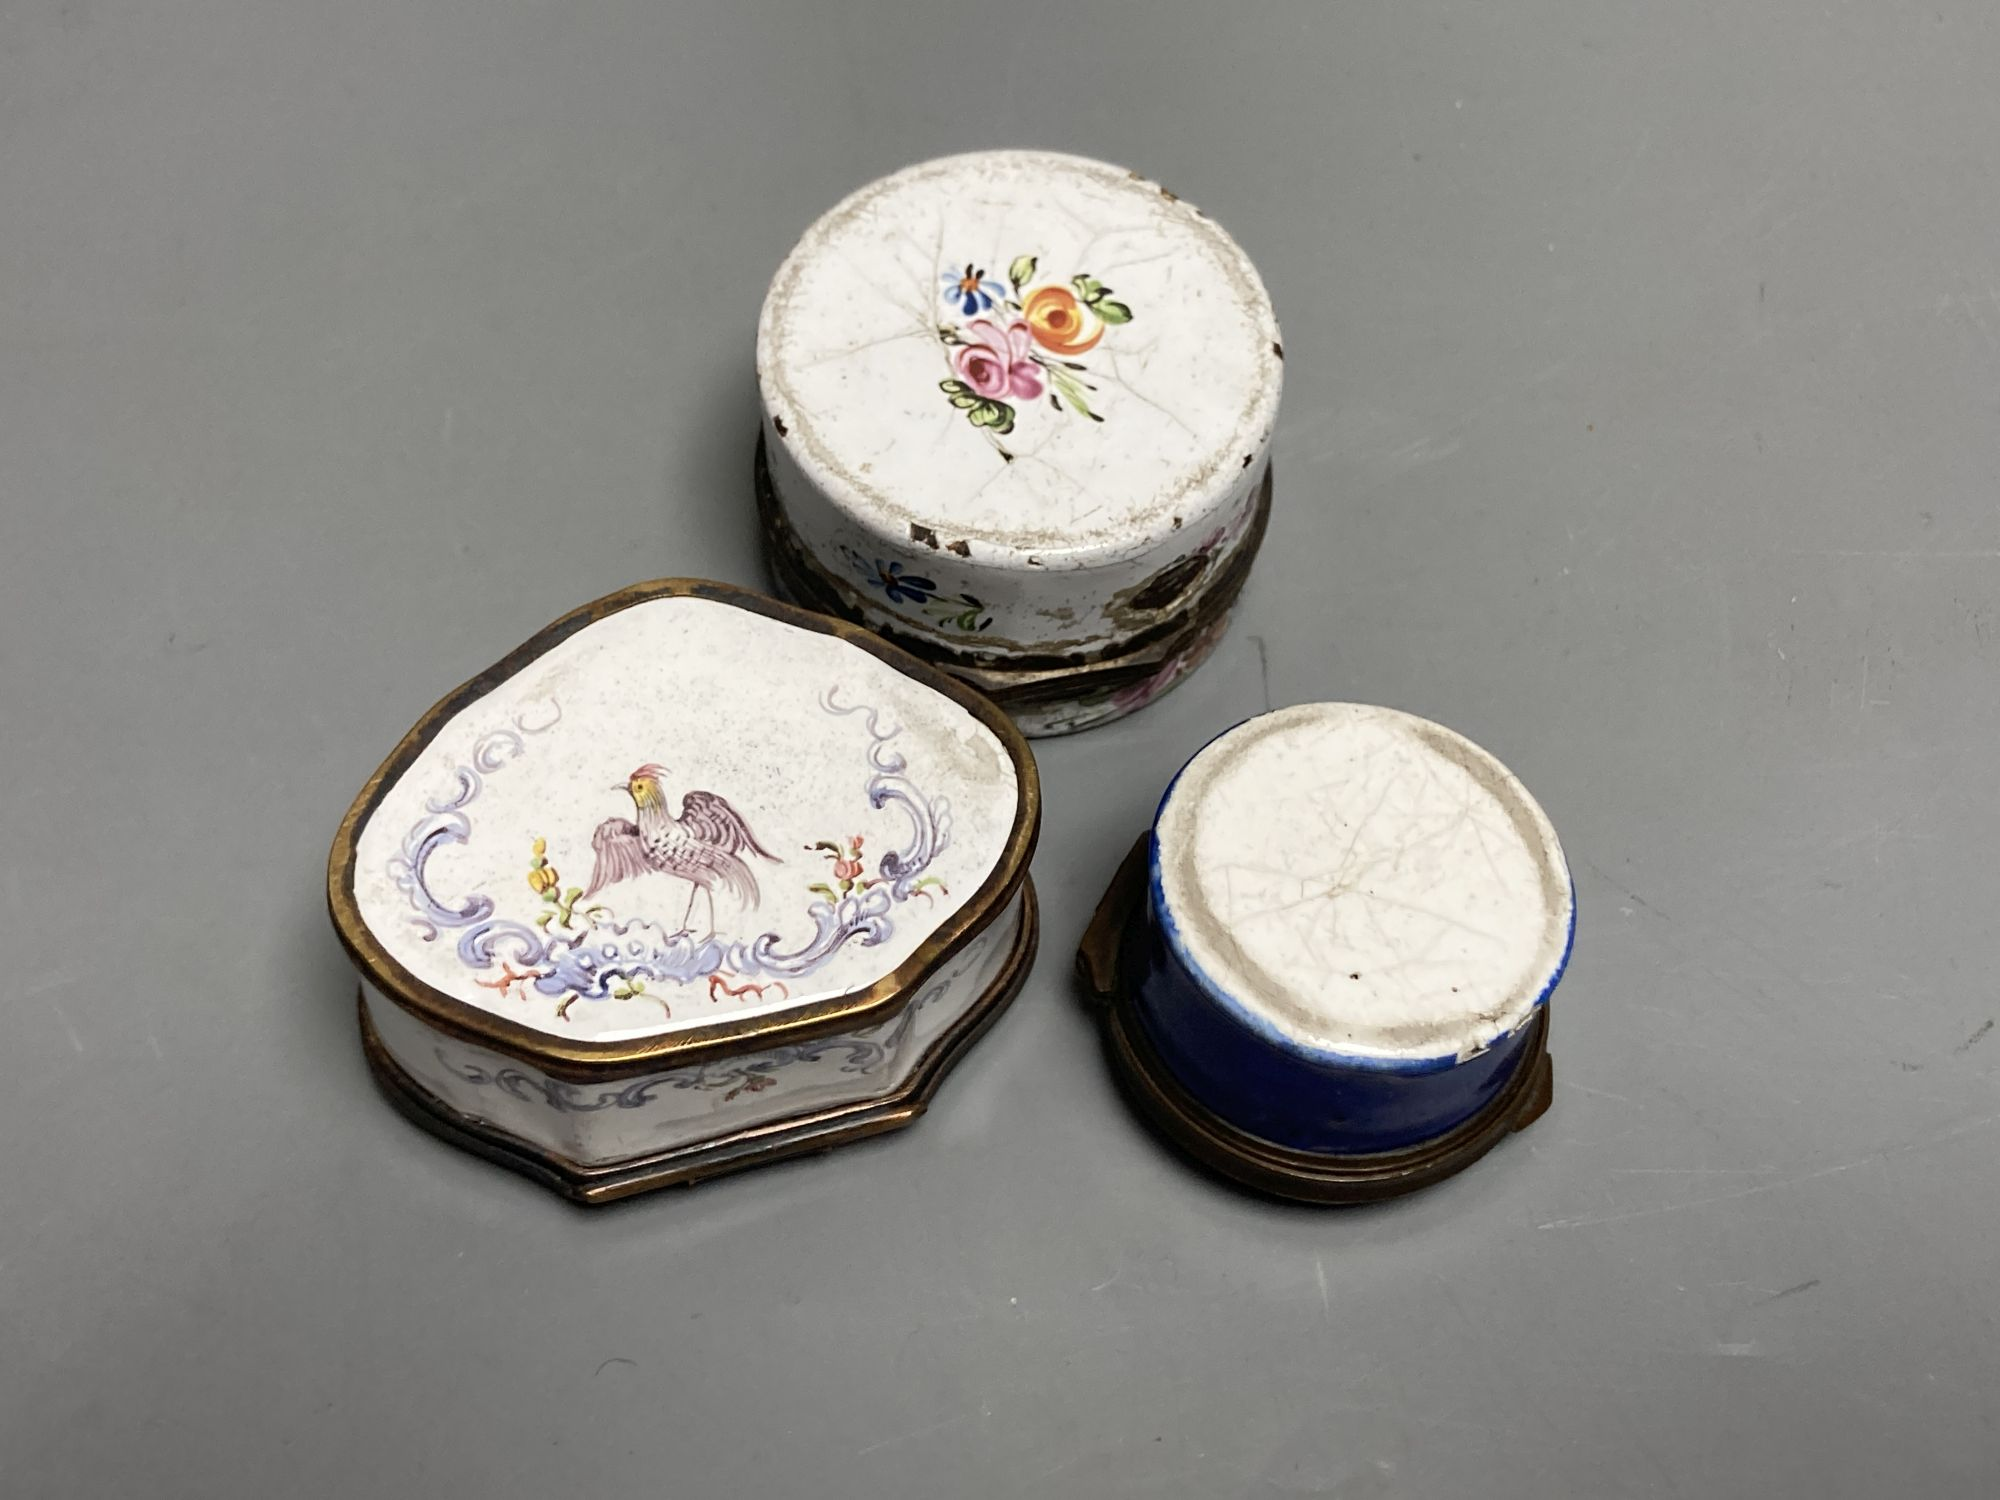 An 18th century white enamelled box painted with a palace, 5cm., a cartouche shaped box decorated - Image 3 of 3